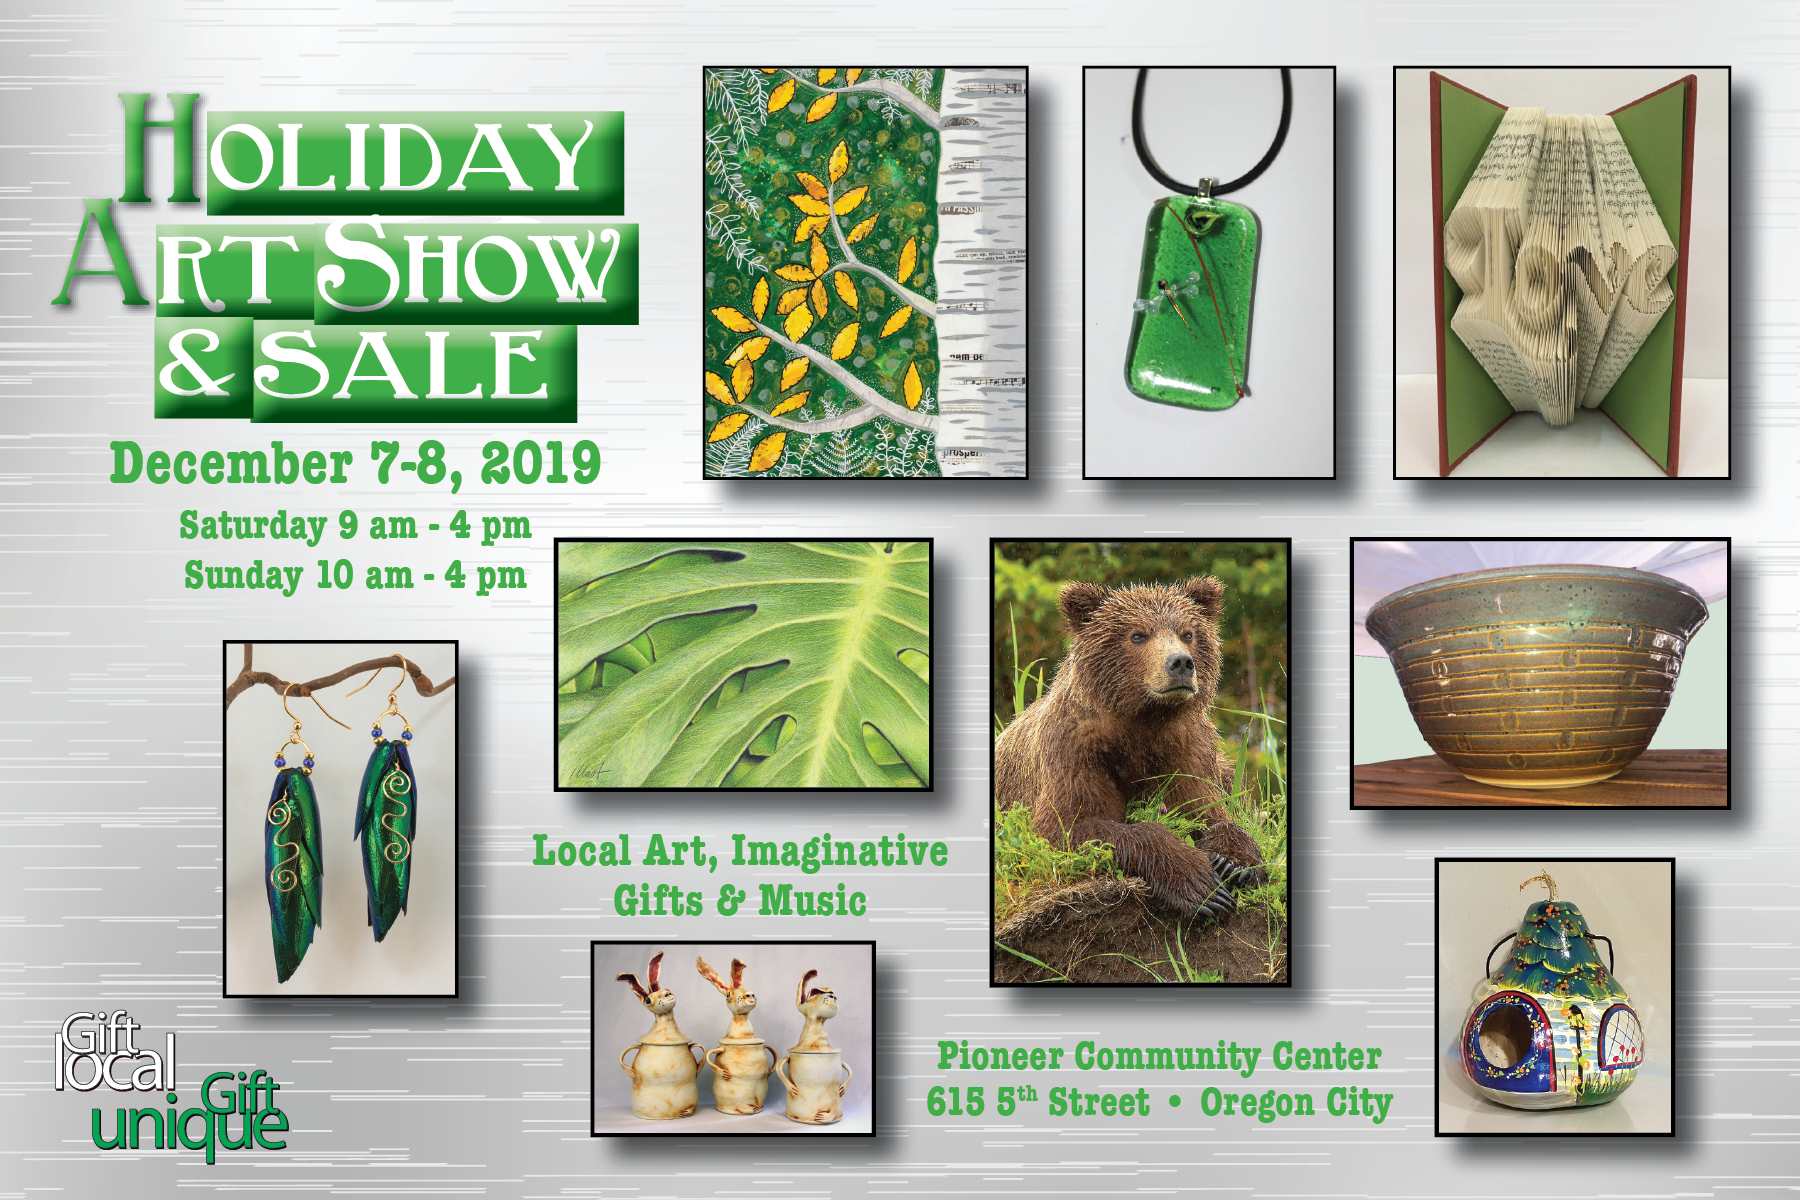 postcard for the 2019 Holiday Art Show & Sale 2019 at the Pioneer Community Center, Oregon City